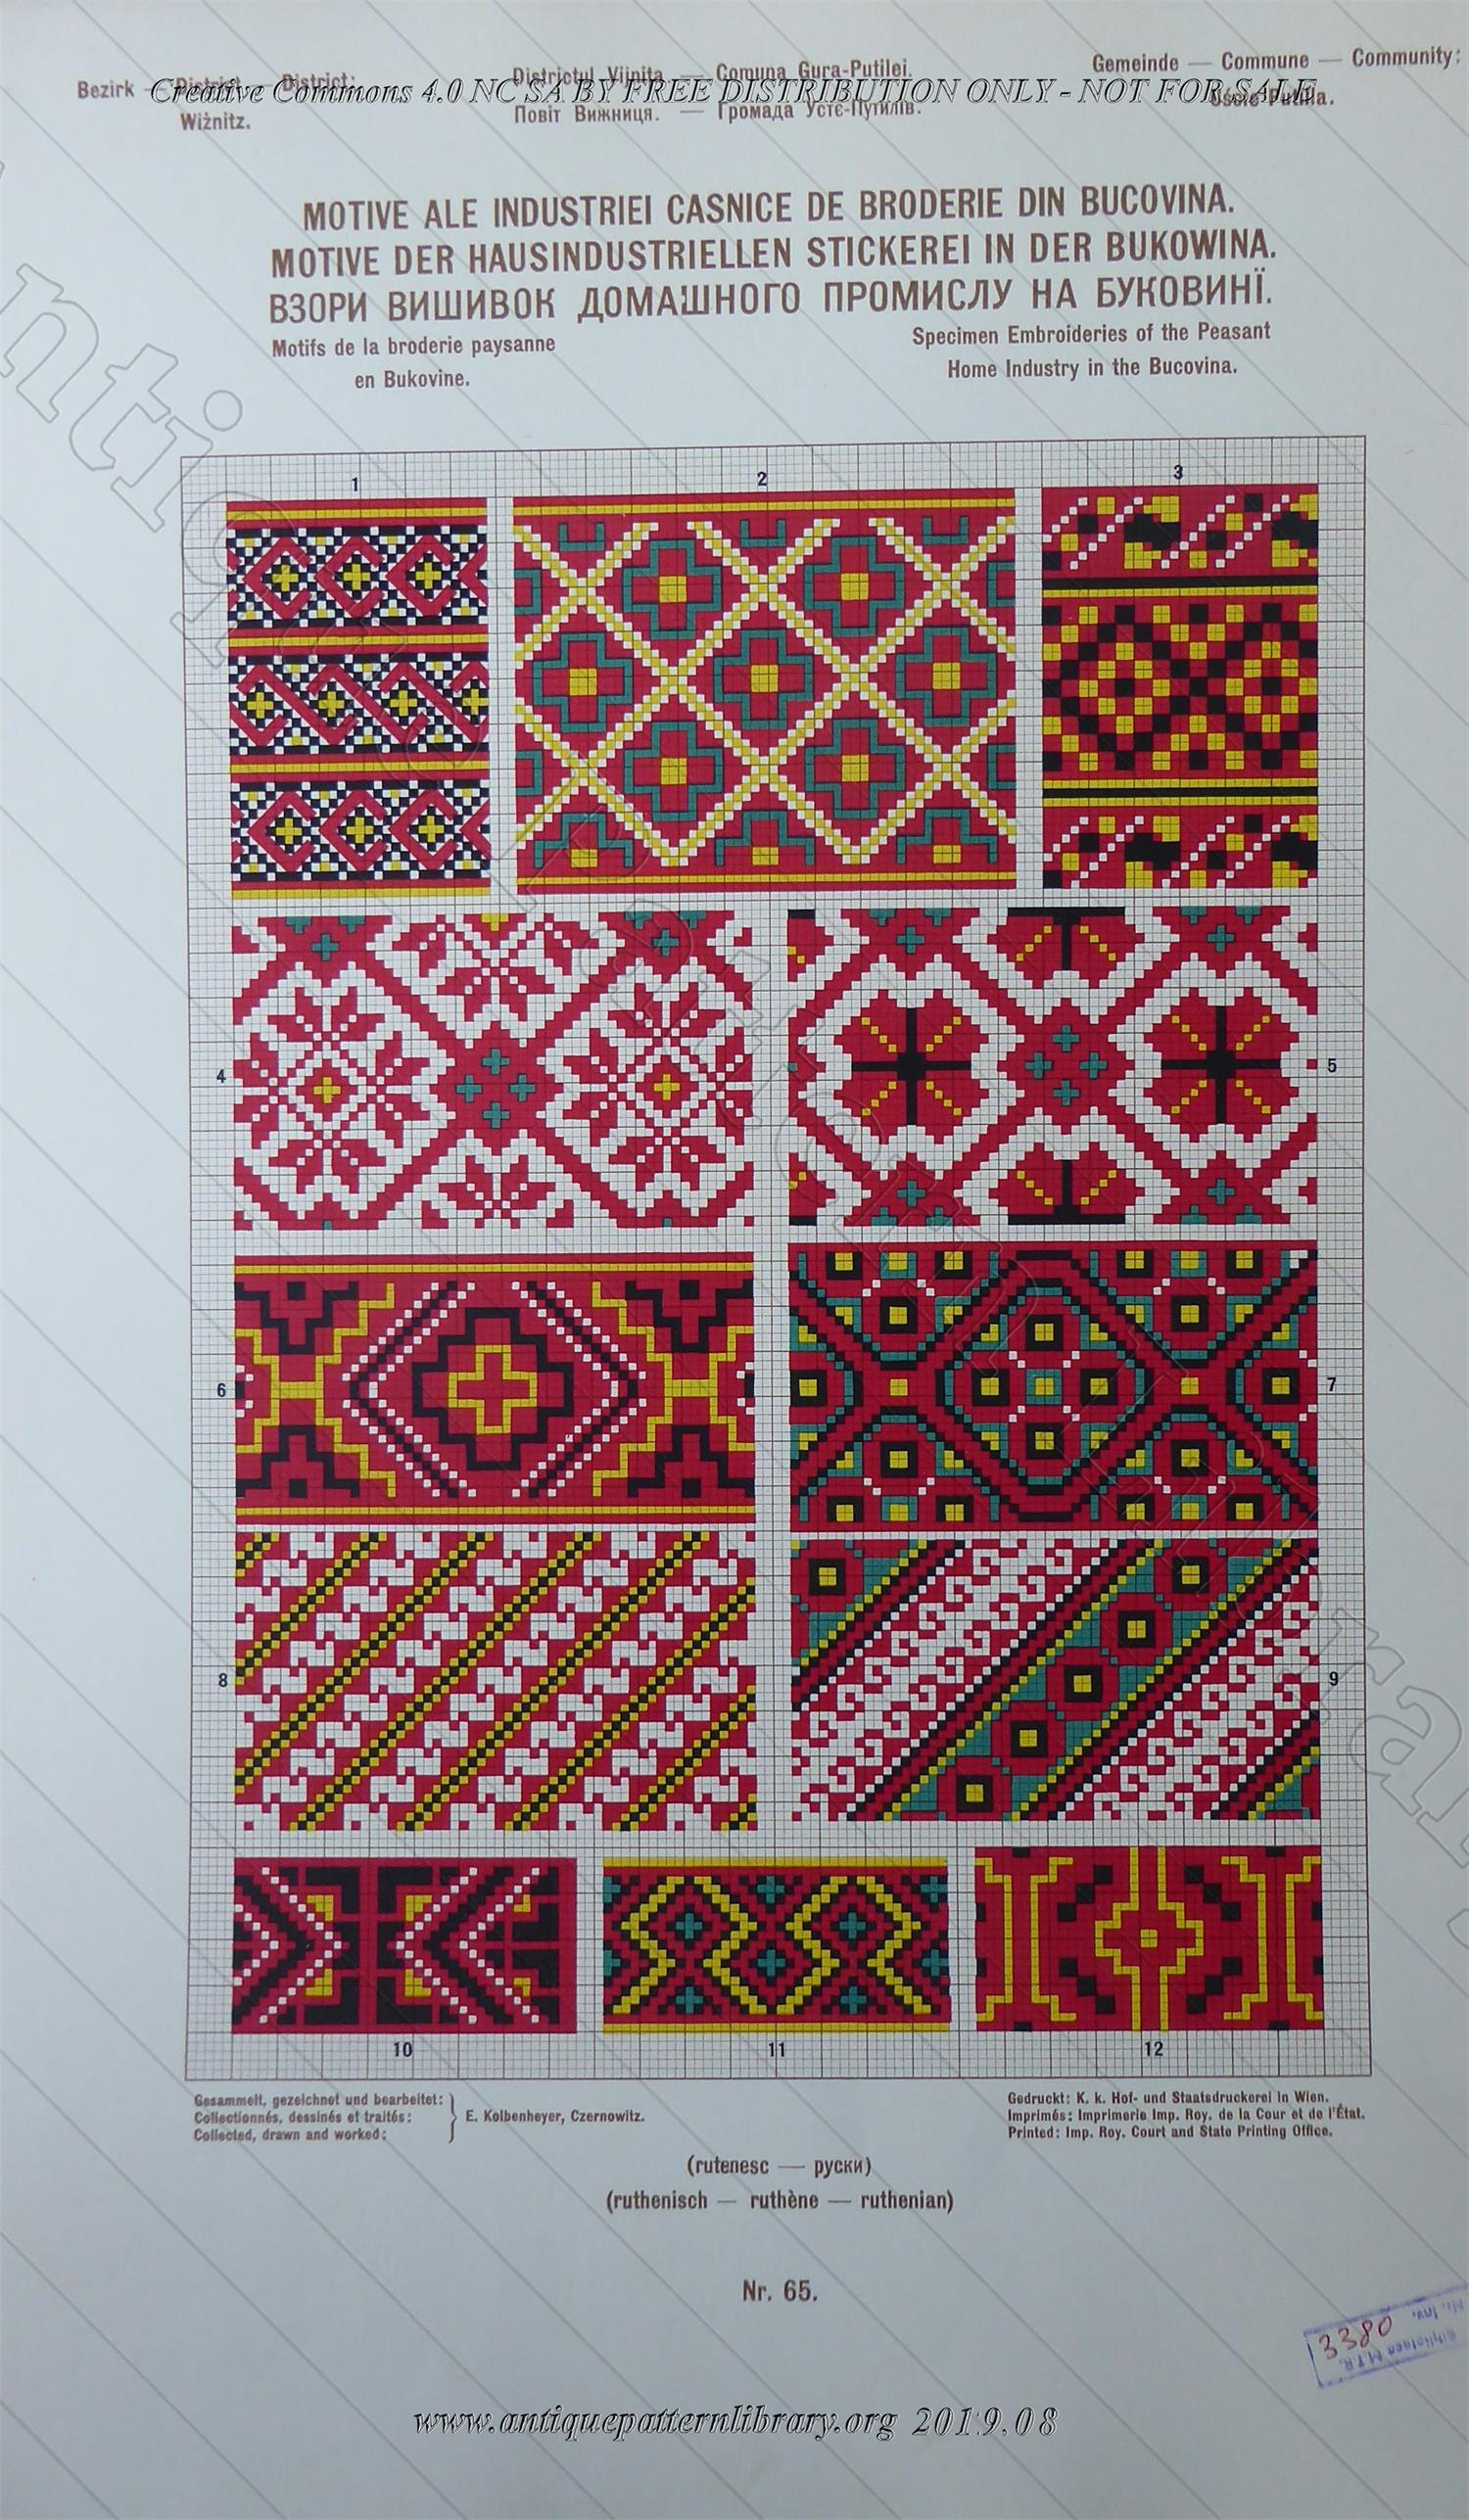 H-IB003 Specimen Embroideries of the Peasant Home Industrie in the Bukovina